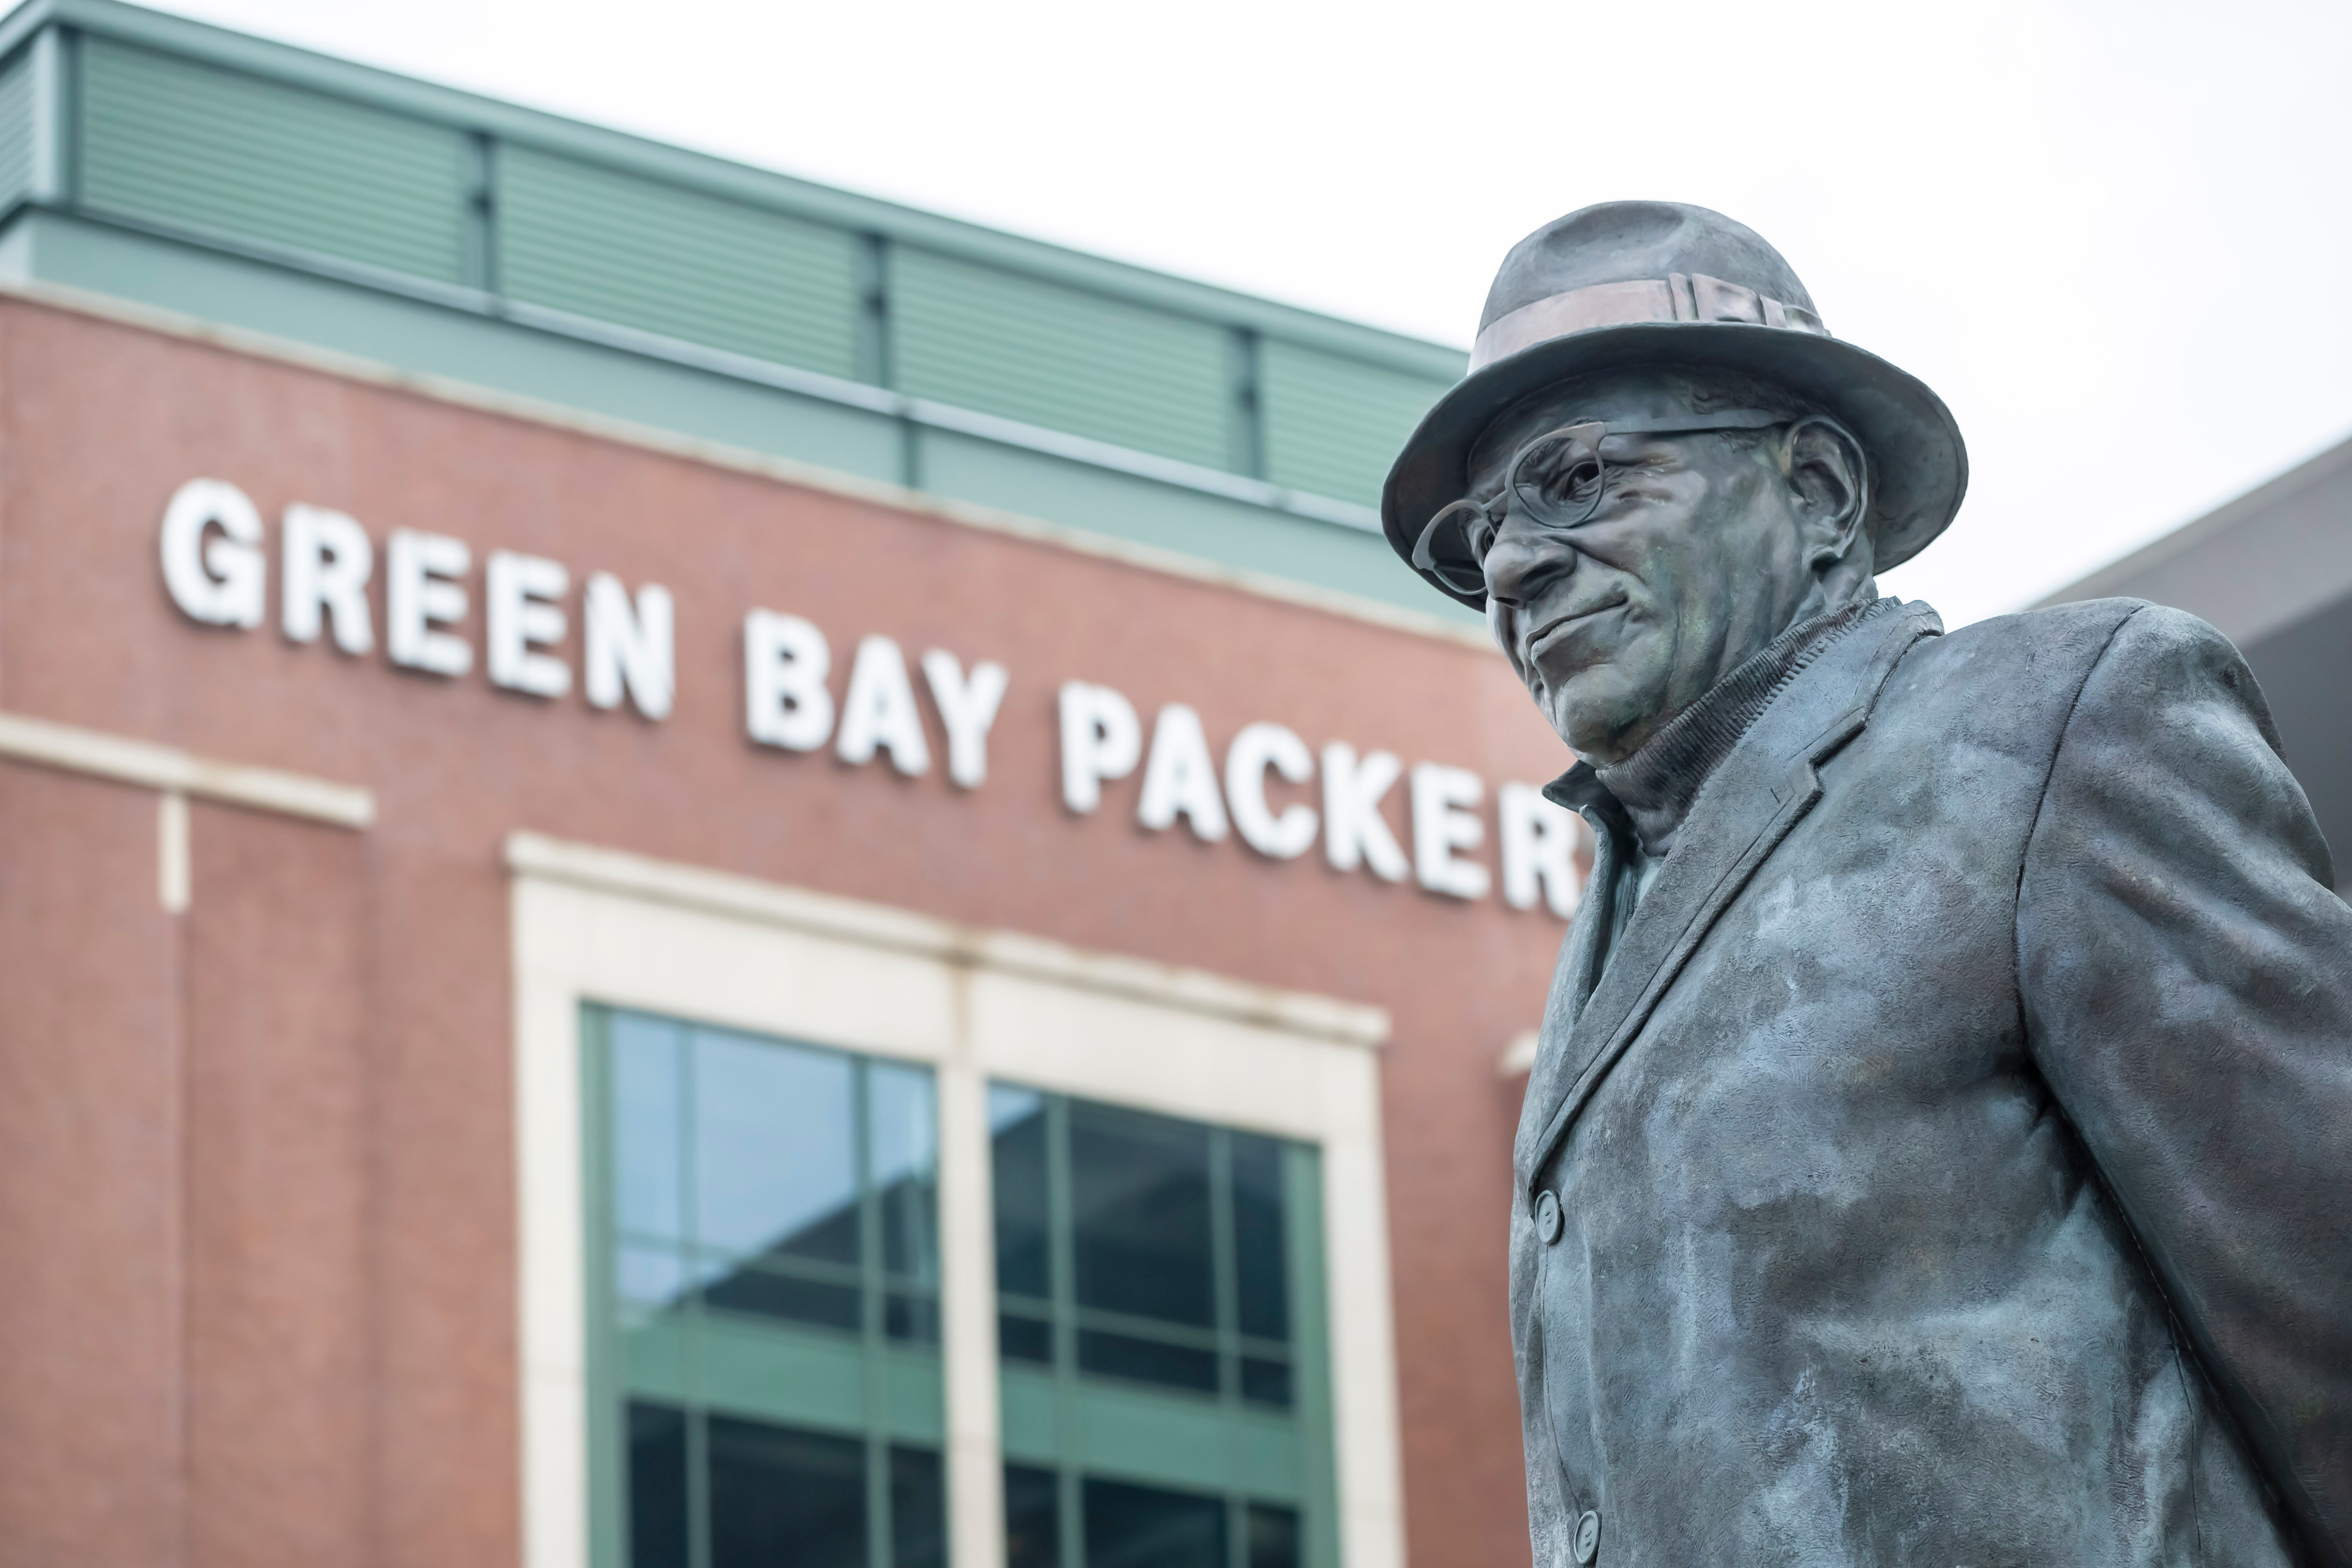 Statue-of-Vince-Lombardi.jpg?mtime=20200115144333#asset:107709